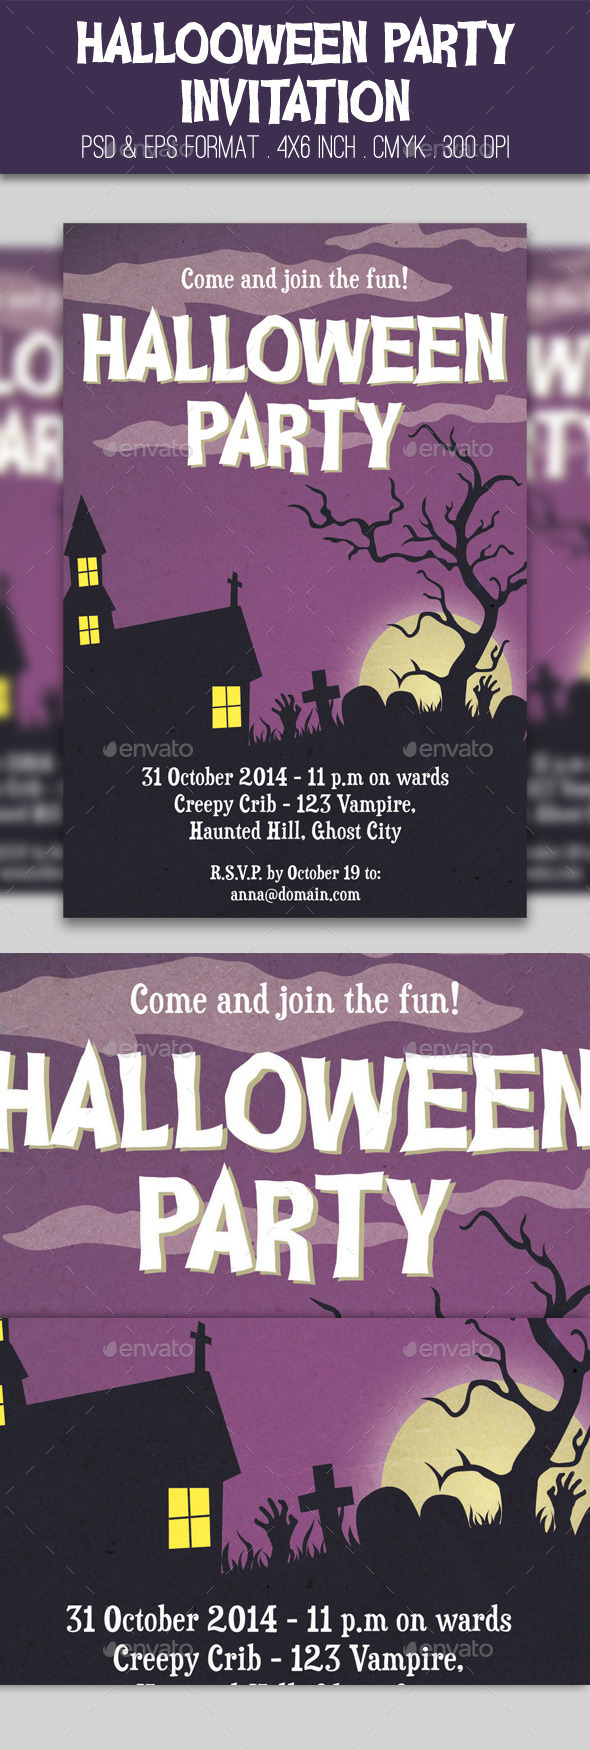 Halloween Party Invitation - Invitations Cards & Invites